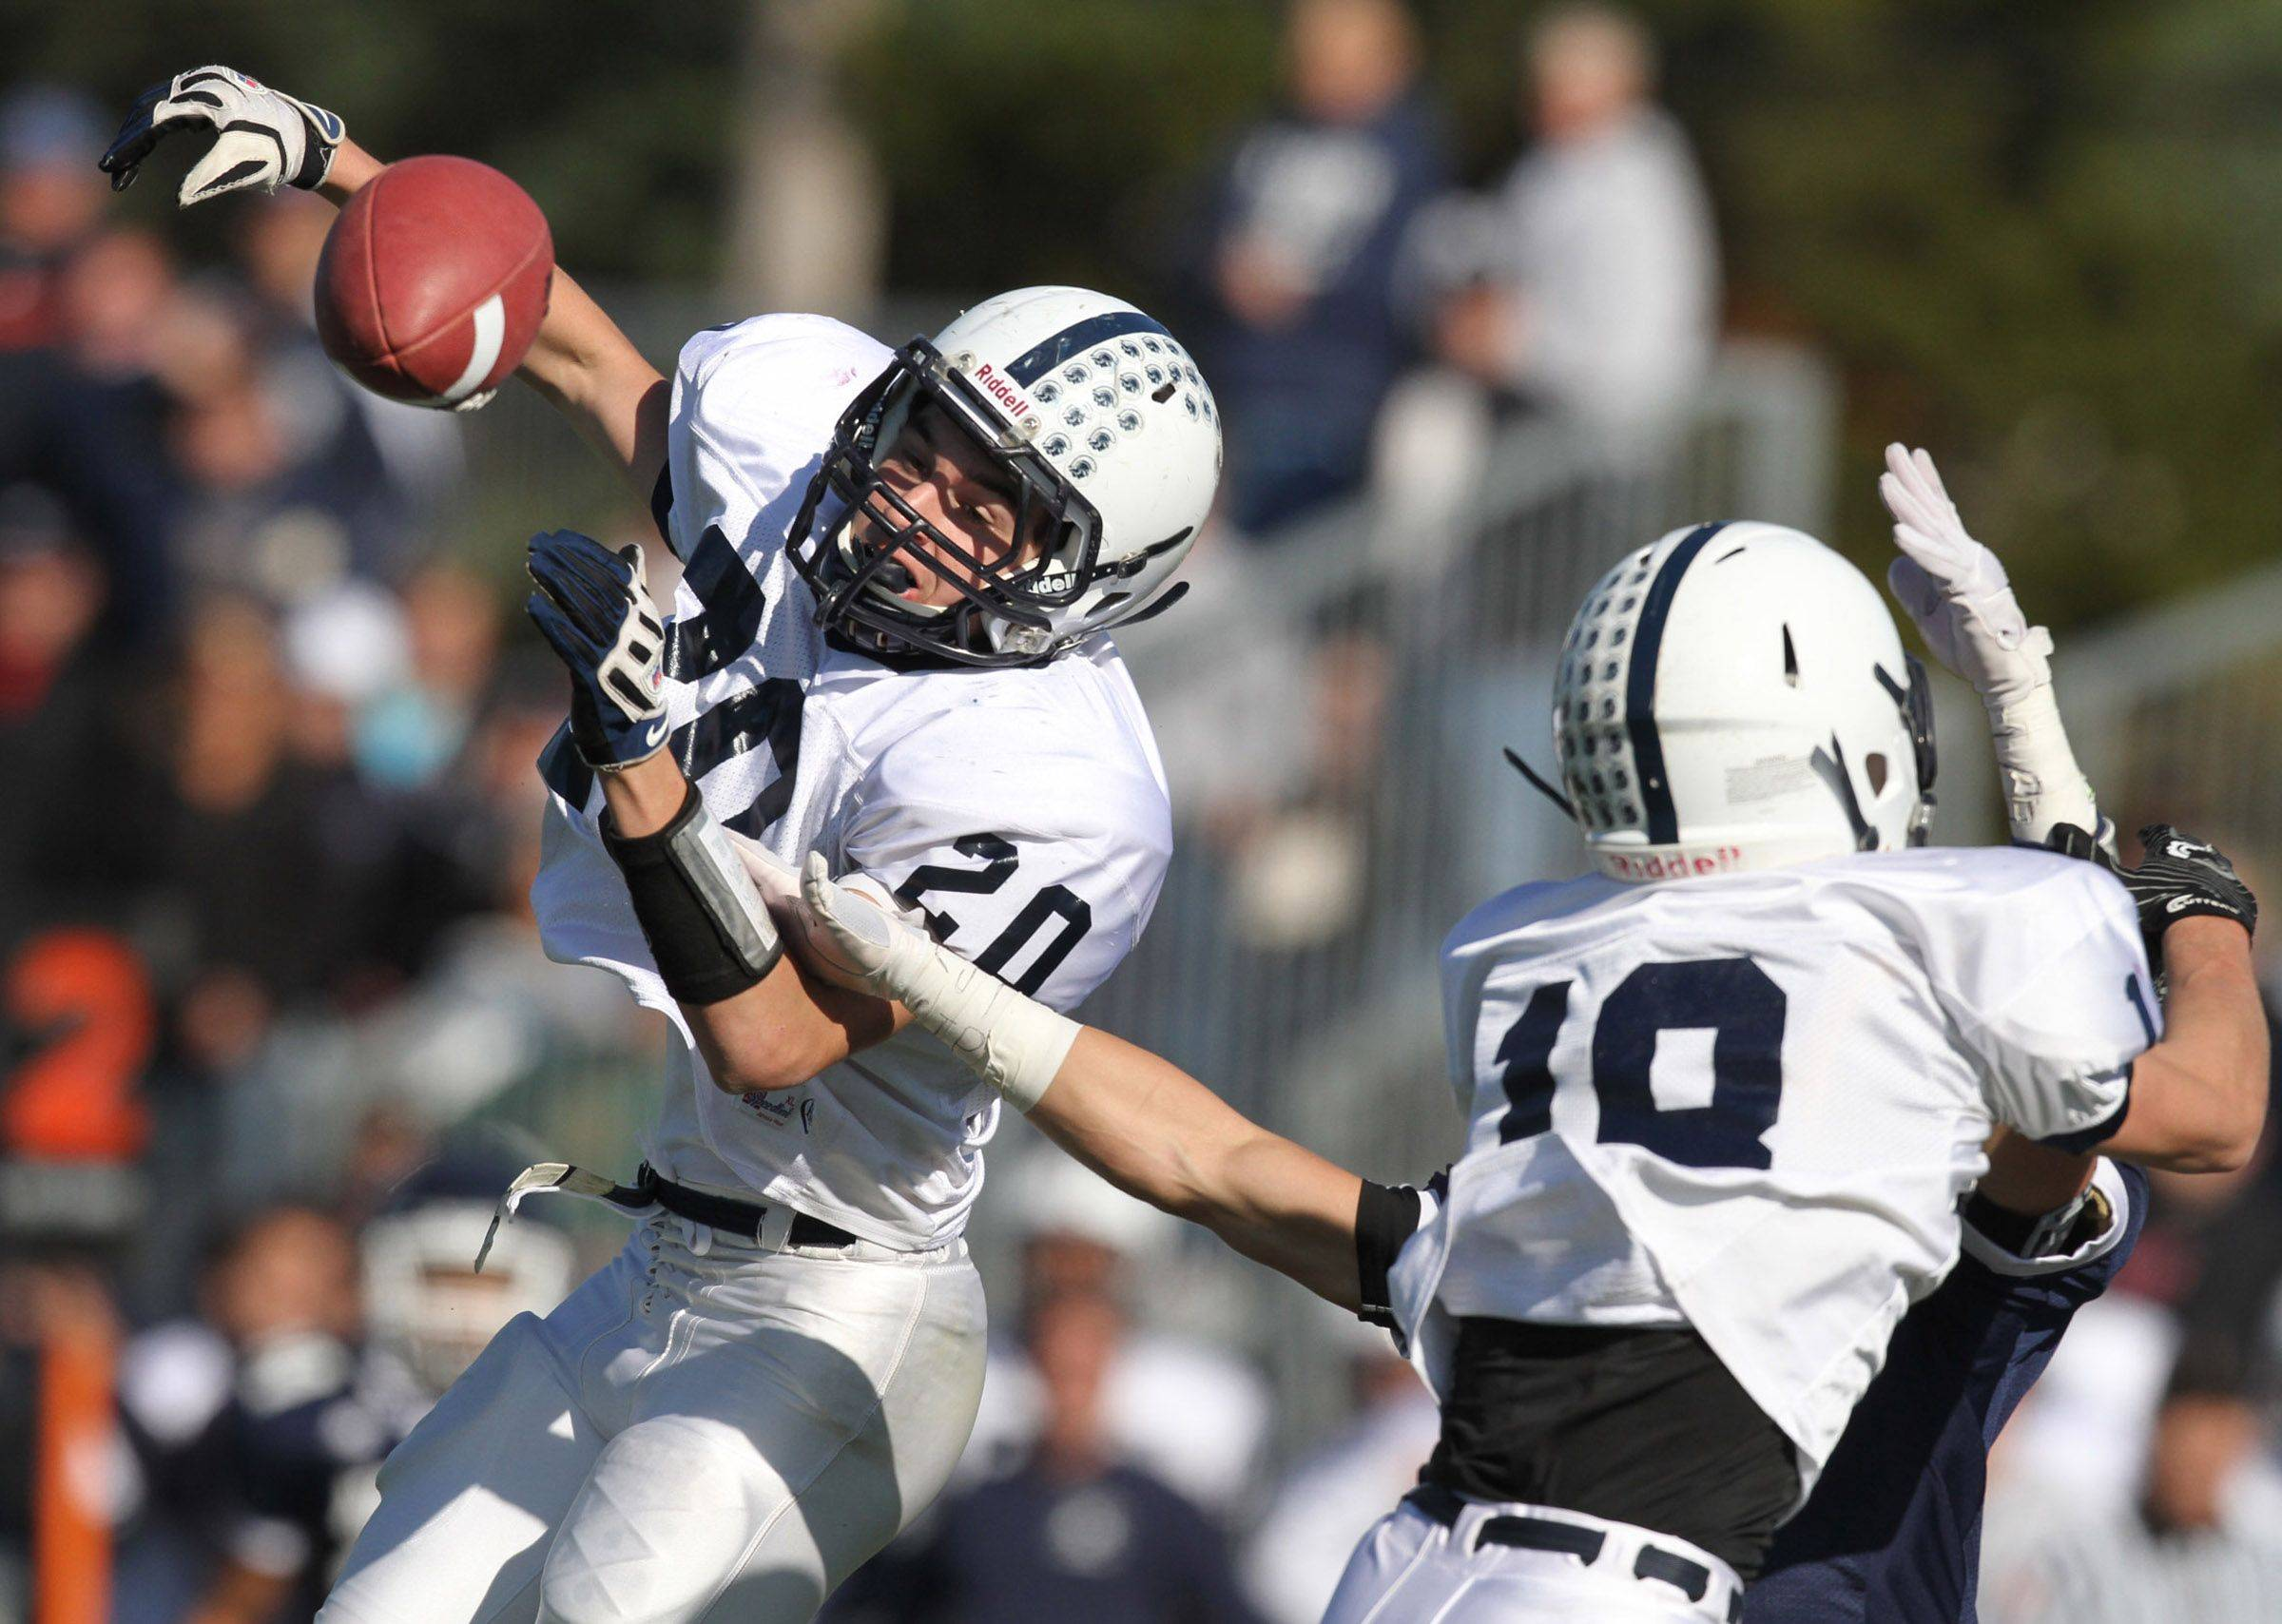 Cary-Grove defensive back Sean Keadyjust missed intercepting this pass Saturday, November 5th.